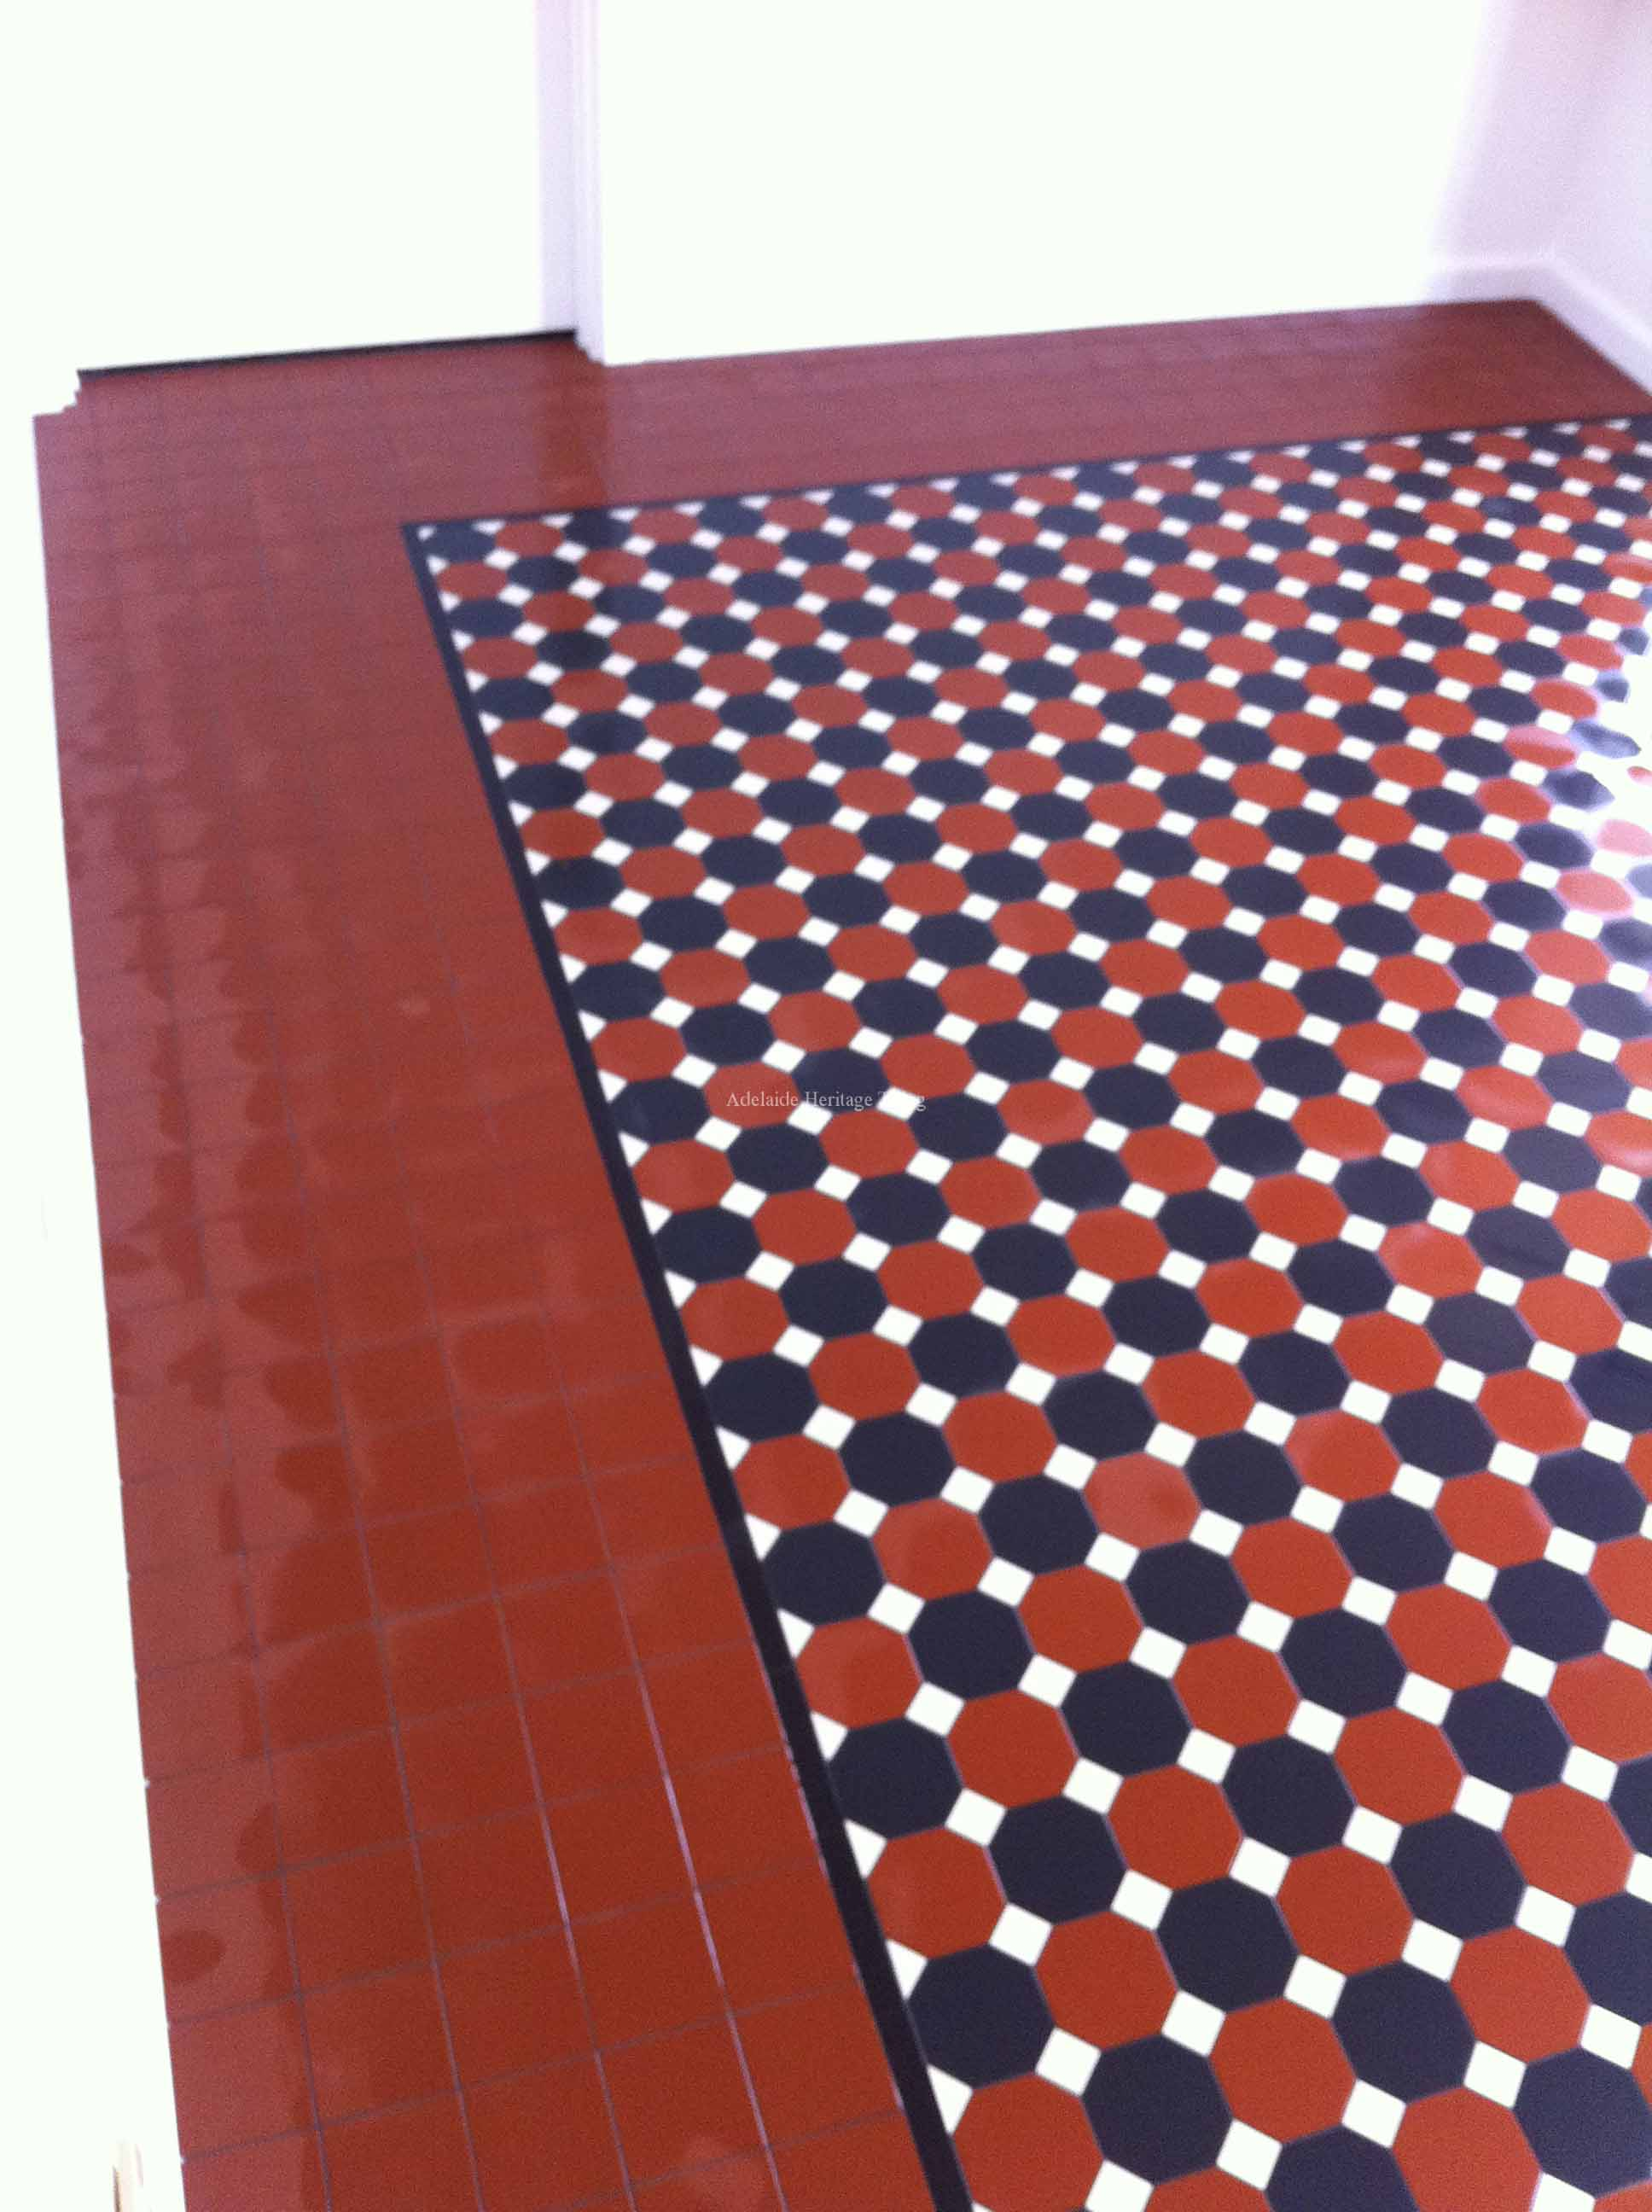 Black and Red Octagons and Dots with Filler Tile Border